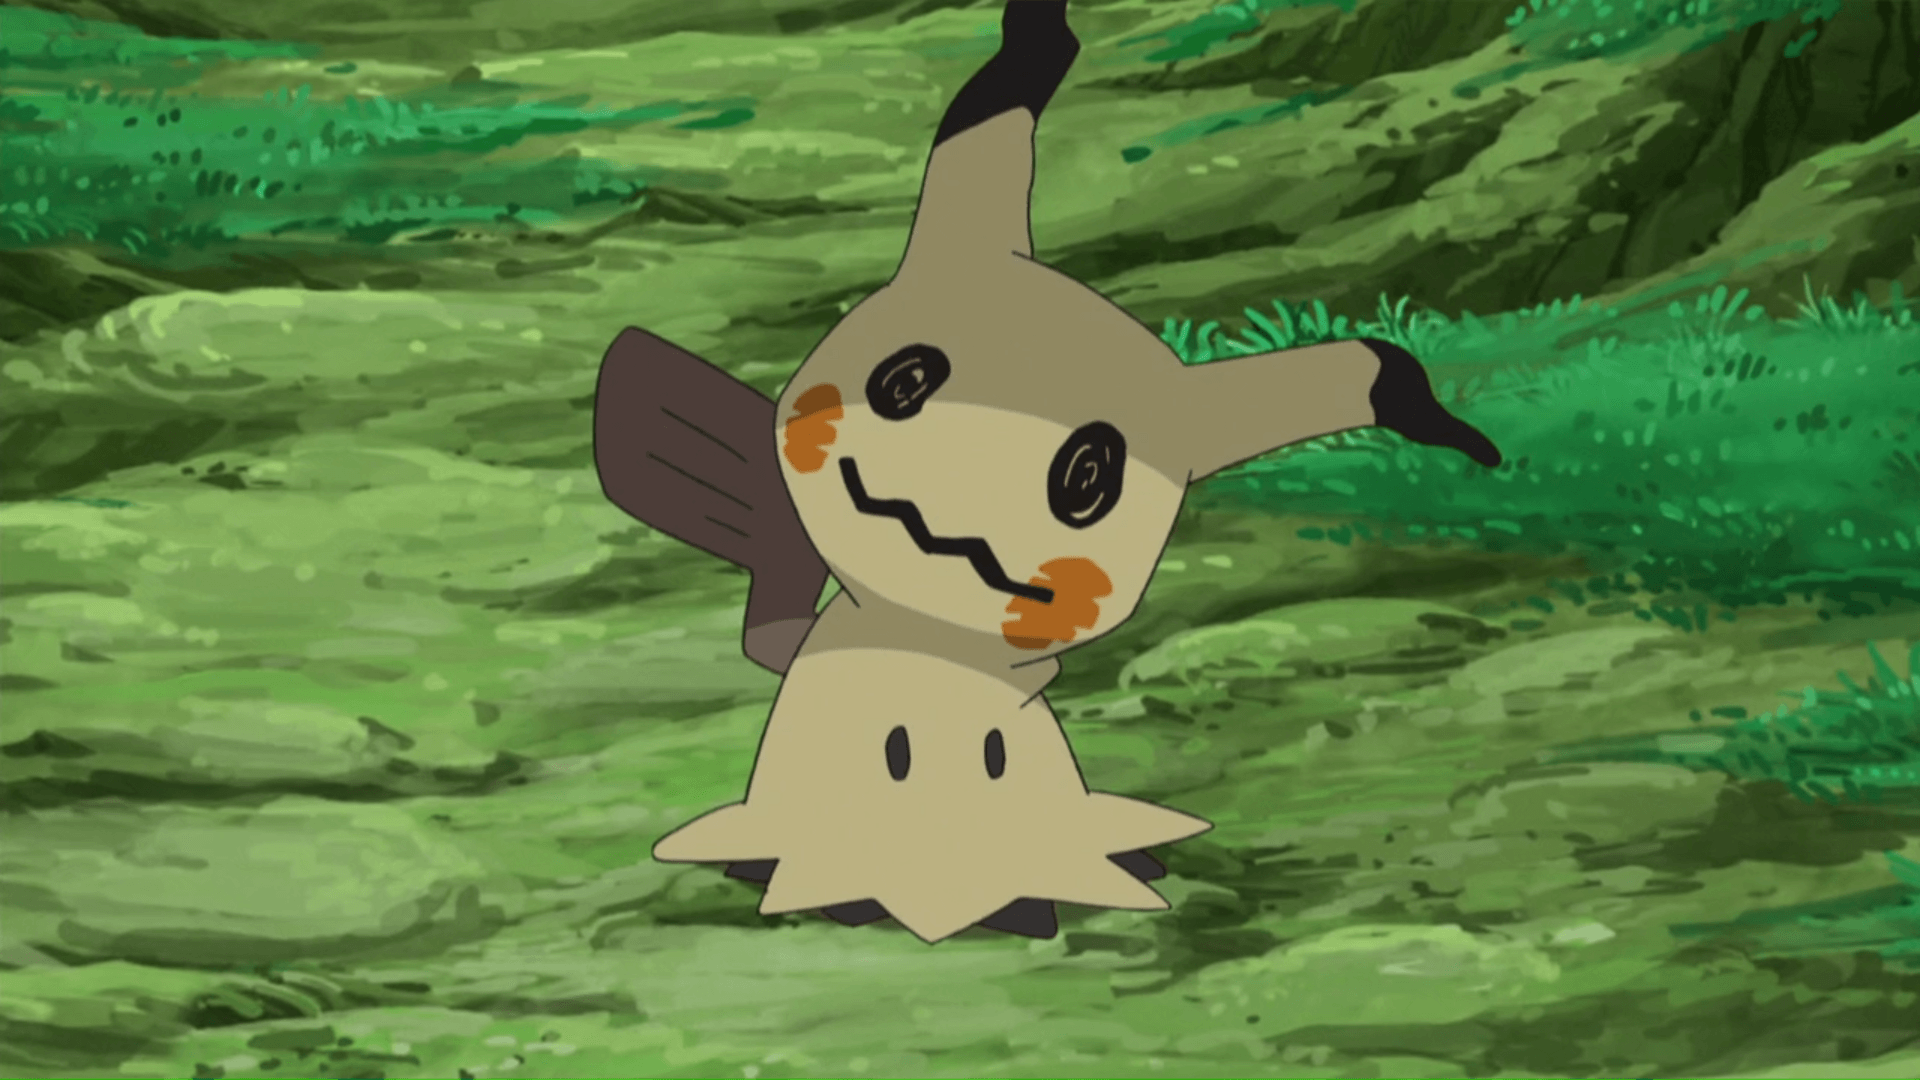 Jessie's Mimikyu | Pokémon Wiki | FANDOM powered by Wikia